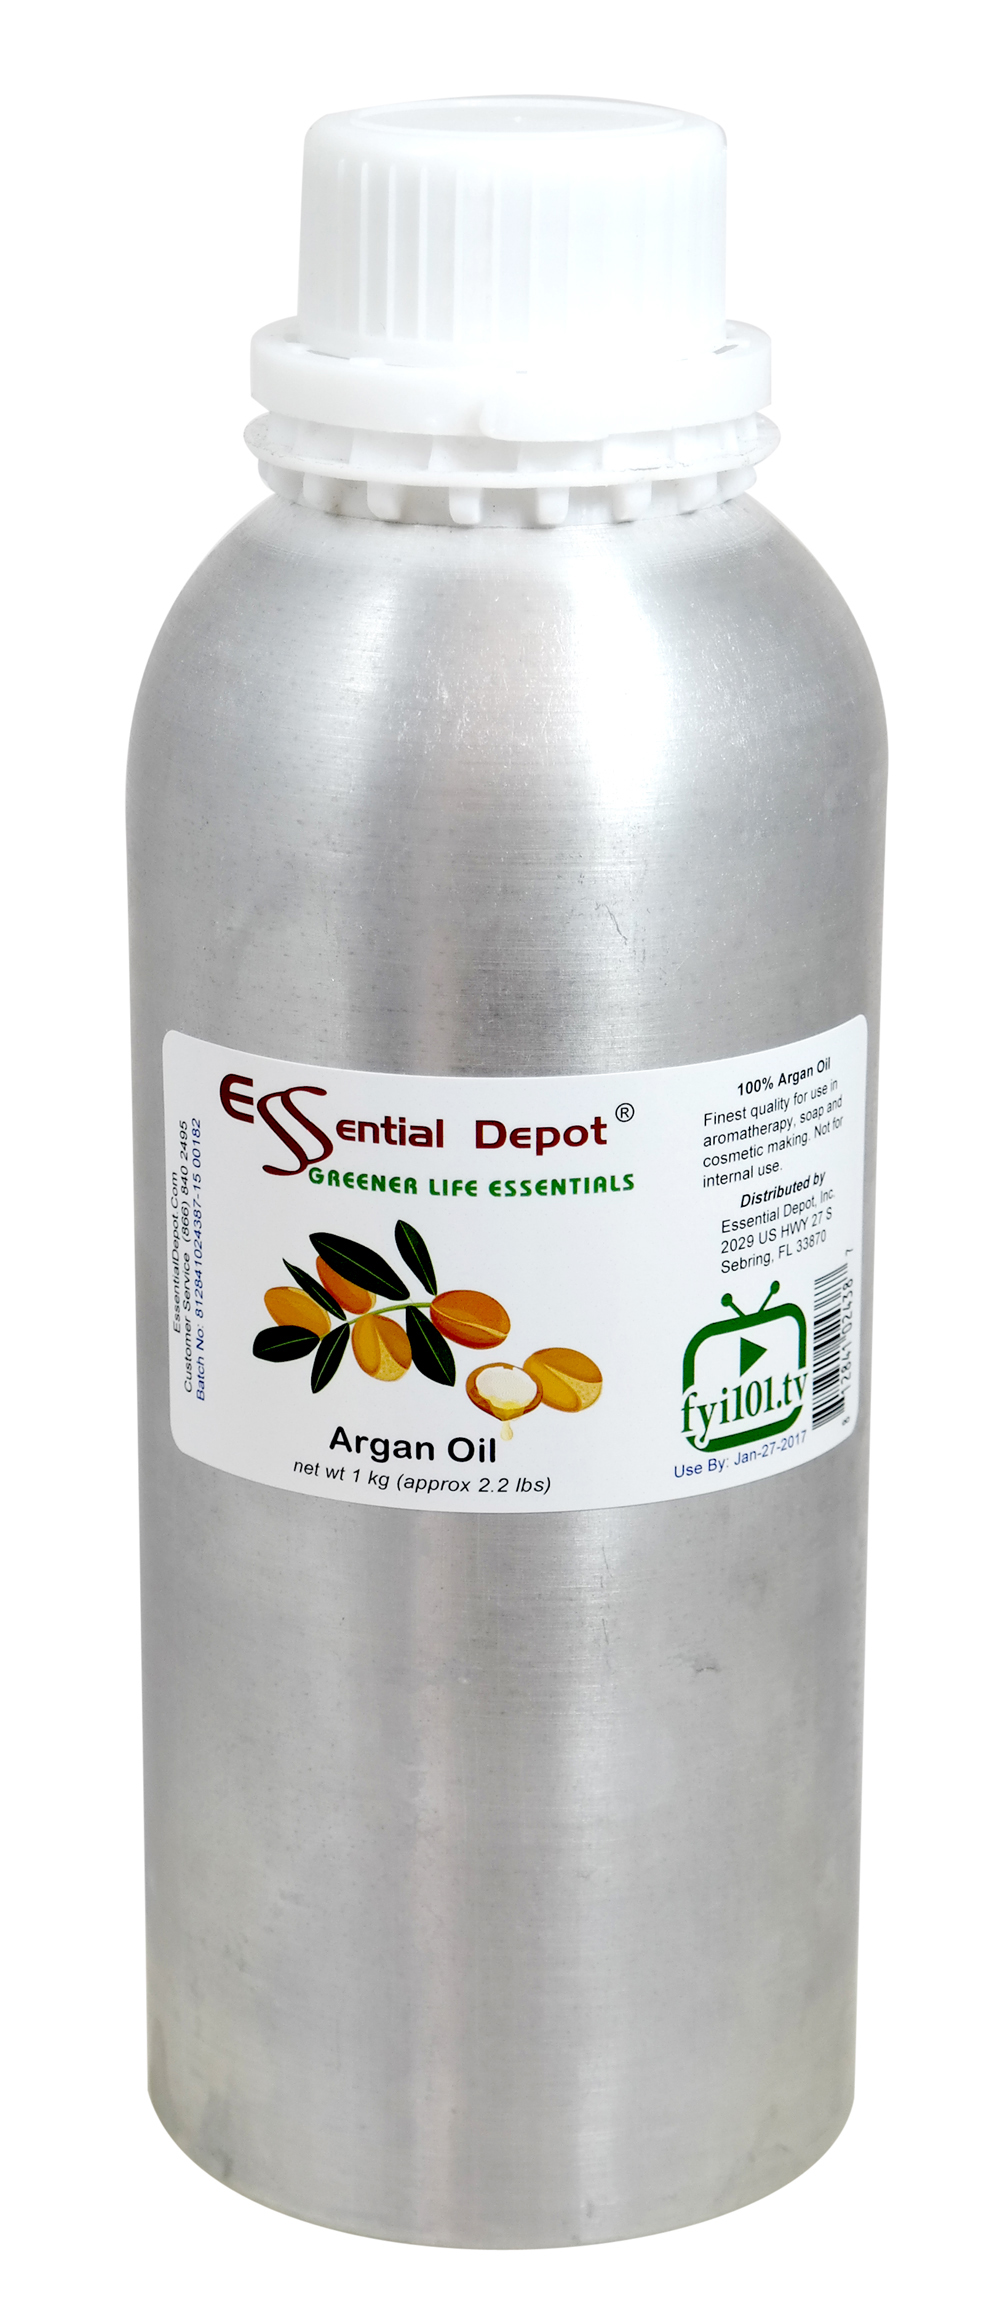 Argan Oil - 1 kg. - Approx 2.2 lbs. - FREE US SHIPPING